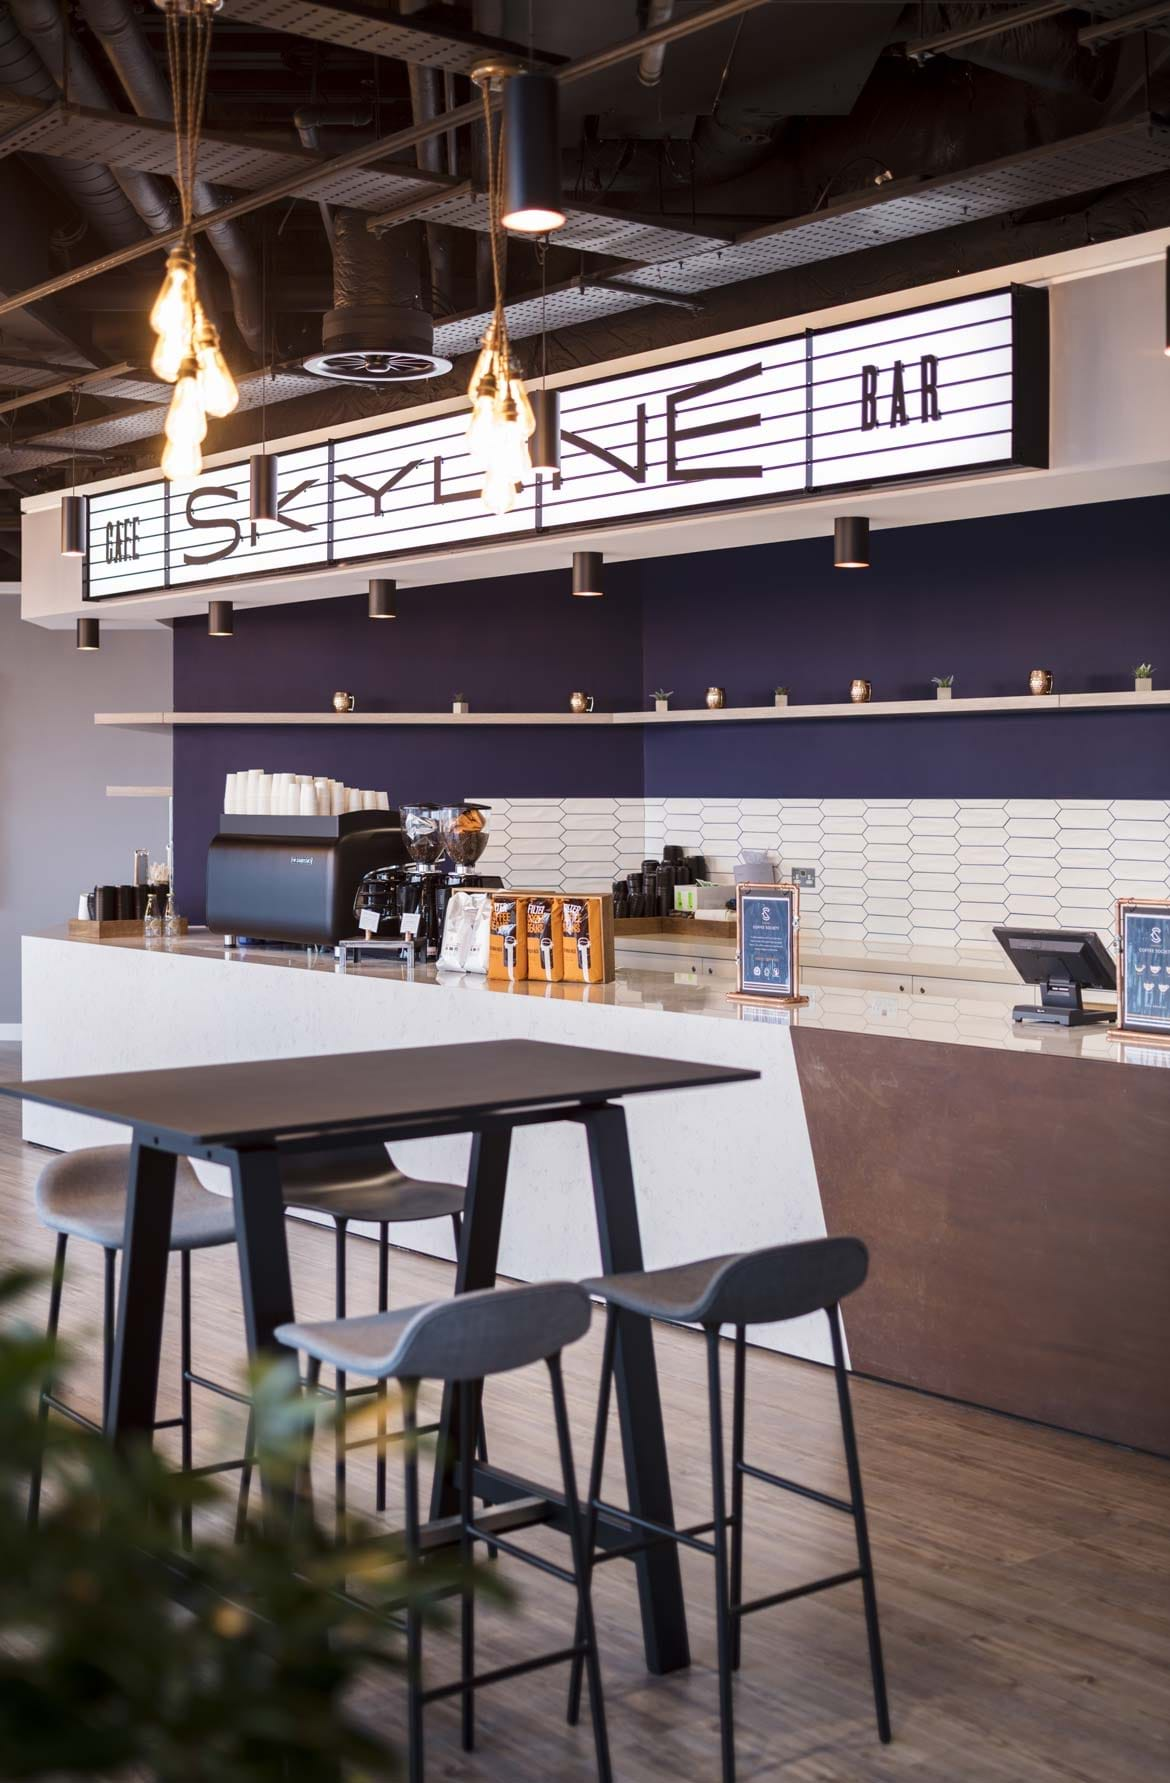 NBC Universal – Skyline coffee bar